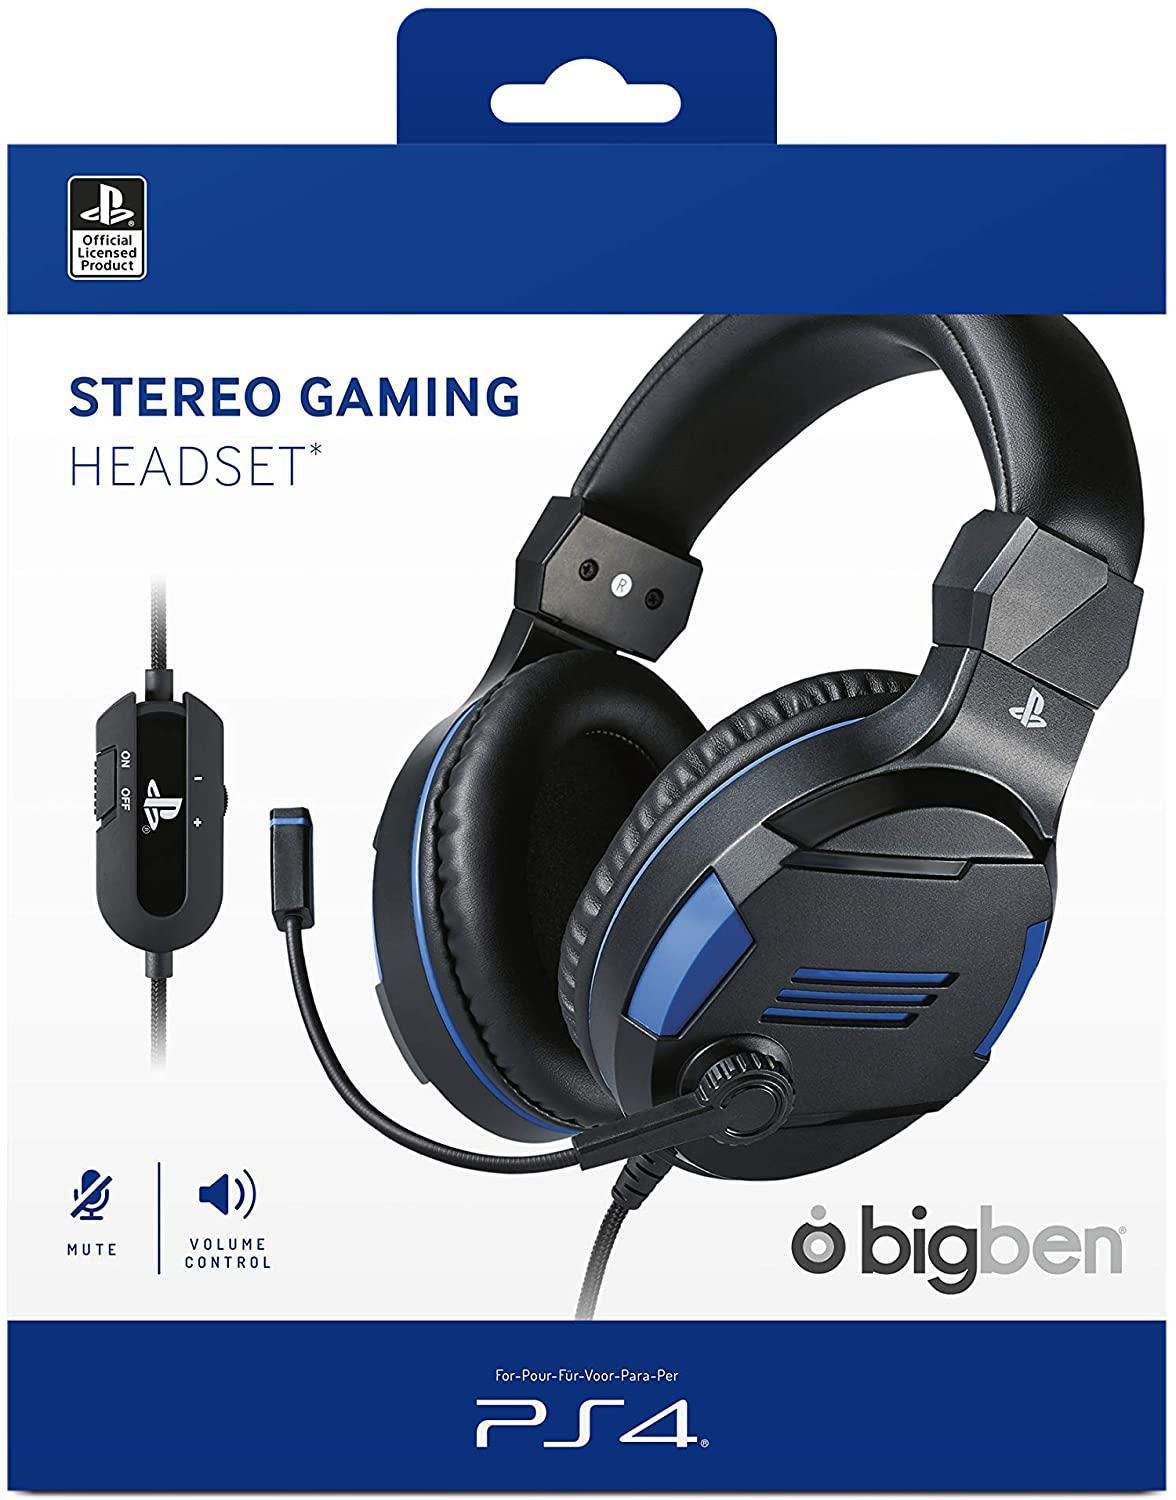 Bigben Stereo Gaming Headset V3 - Titan Black (PS4)